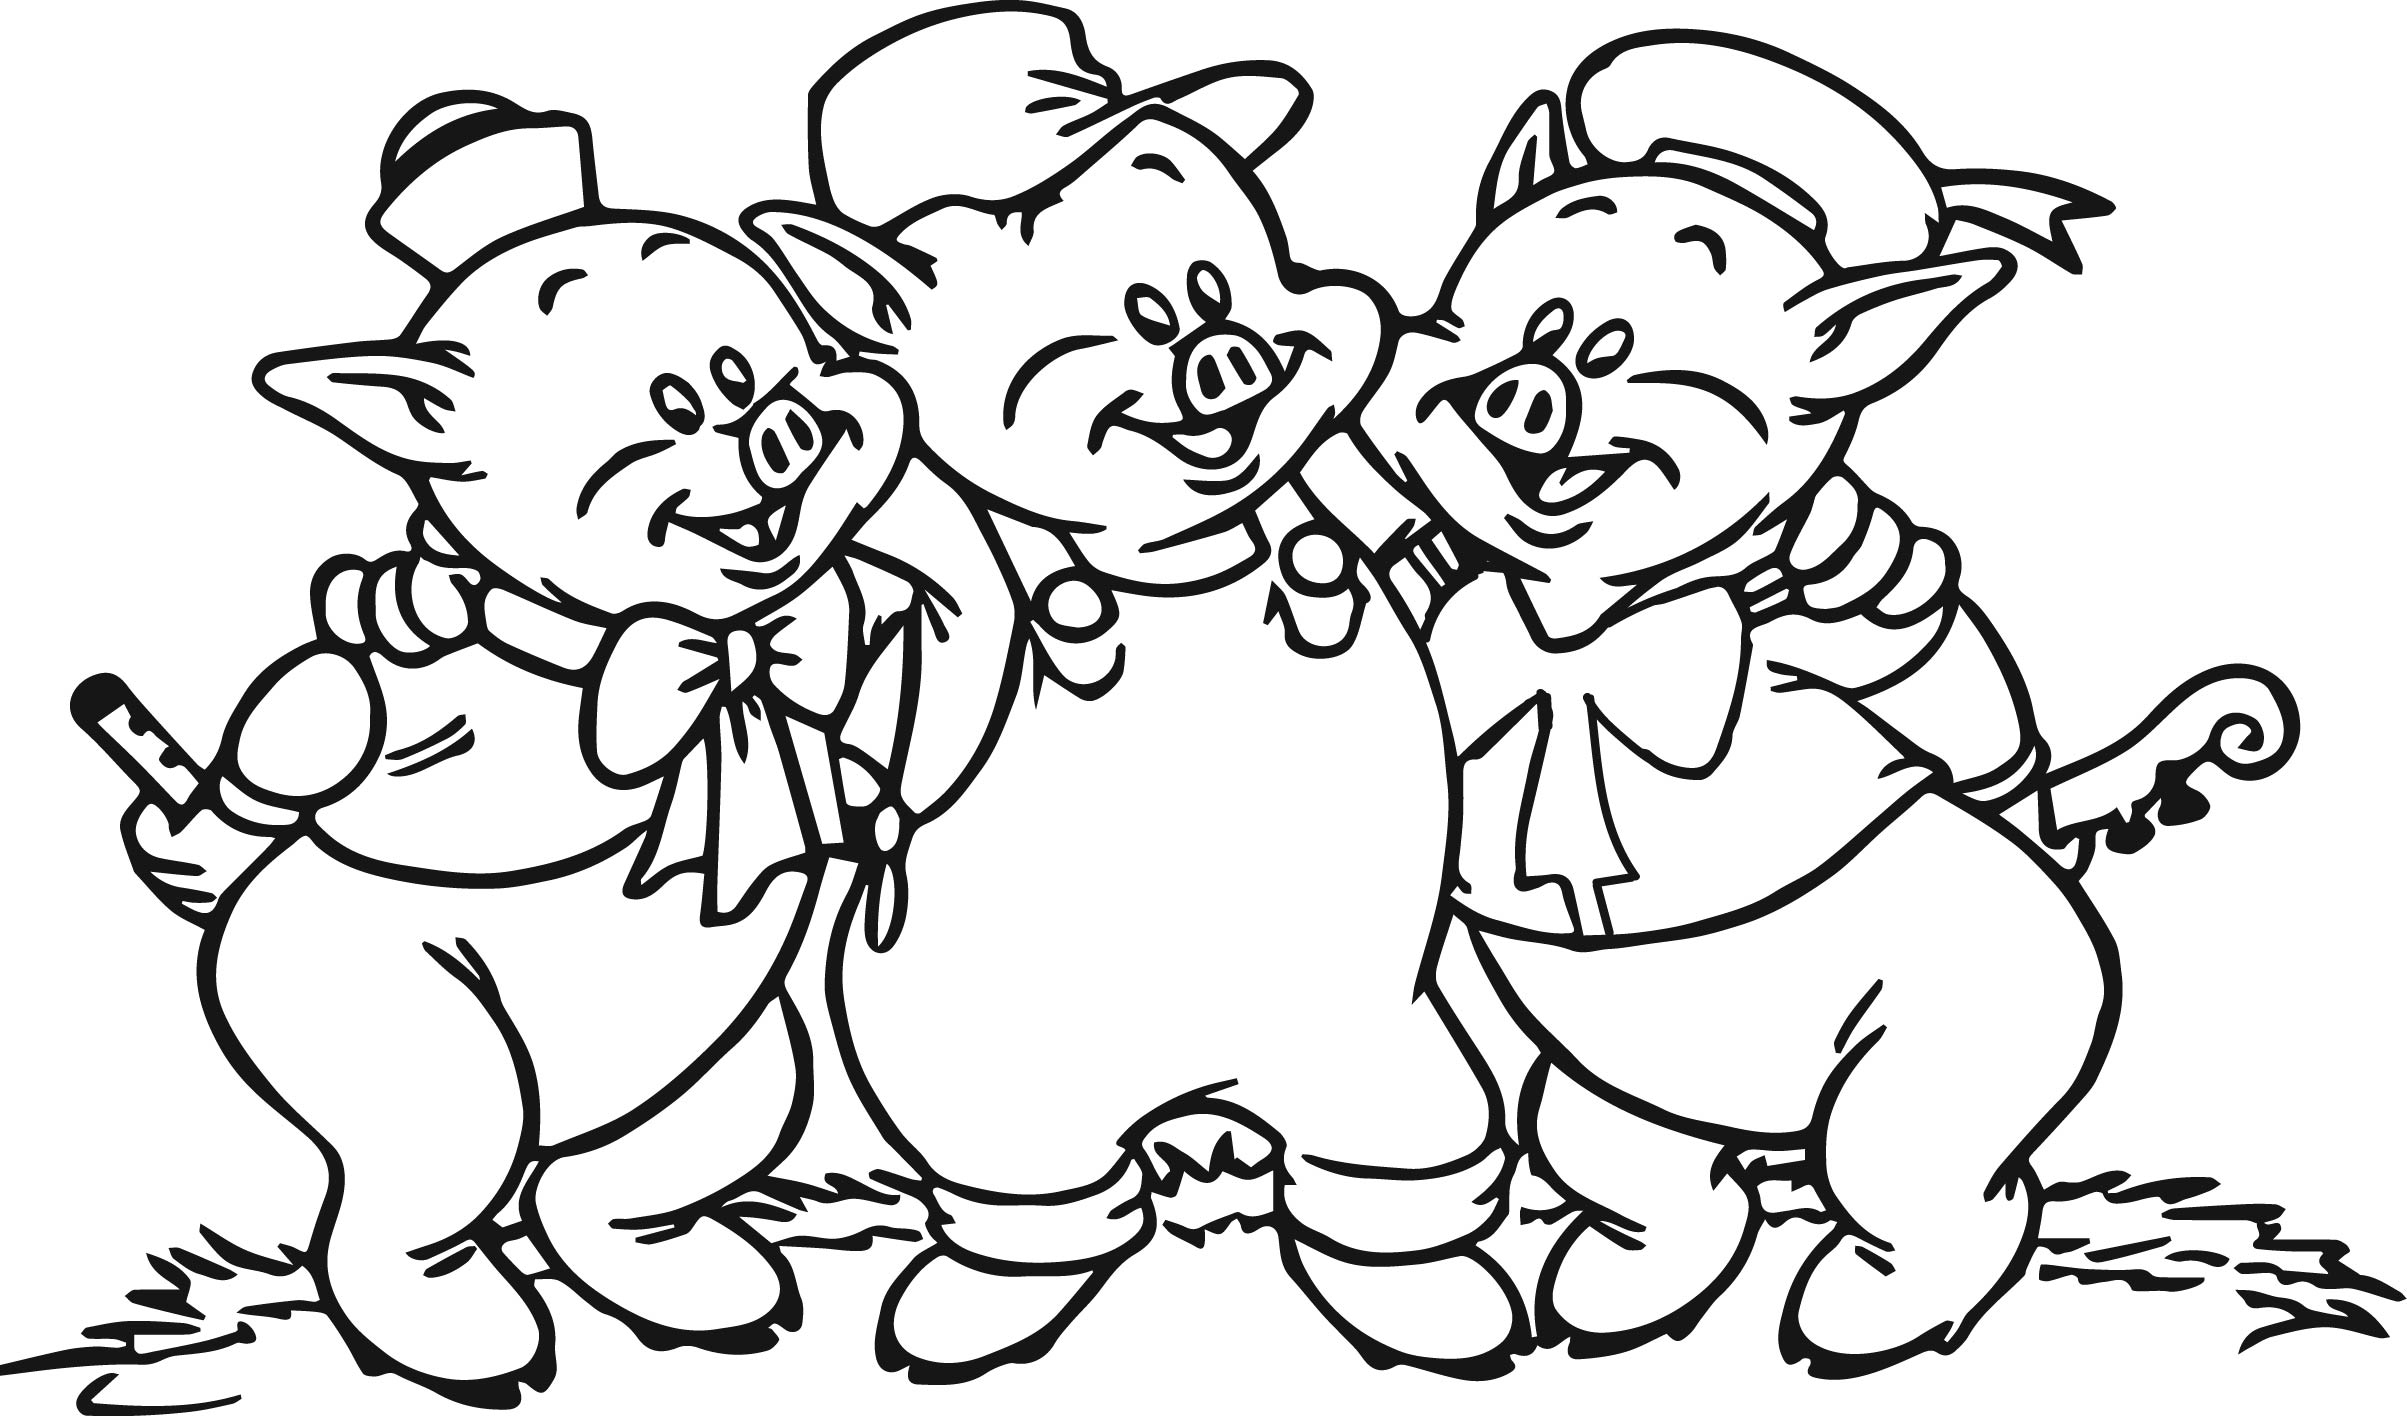 Coloring pages 3 little pigs - 3 Little Pigs Coloring Page